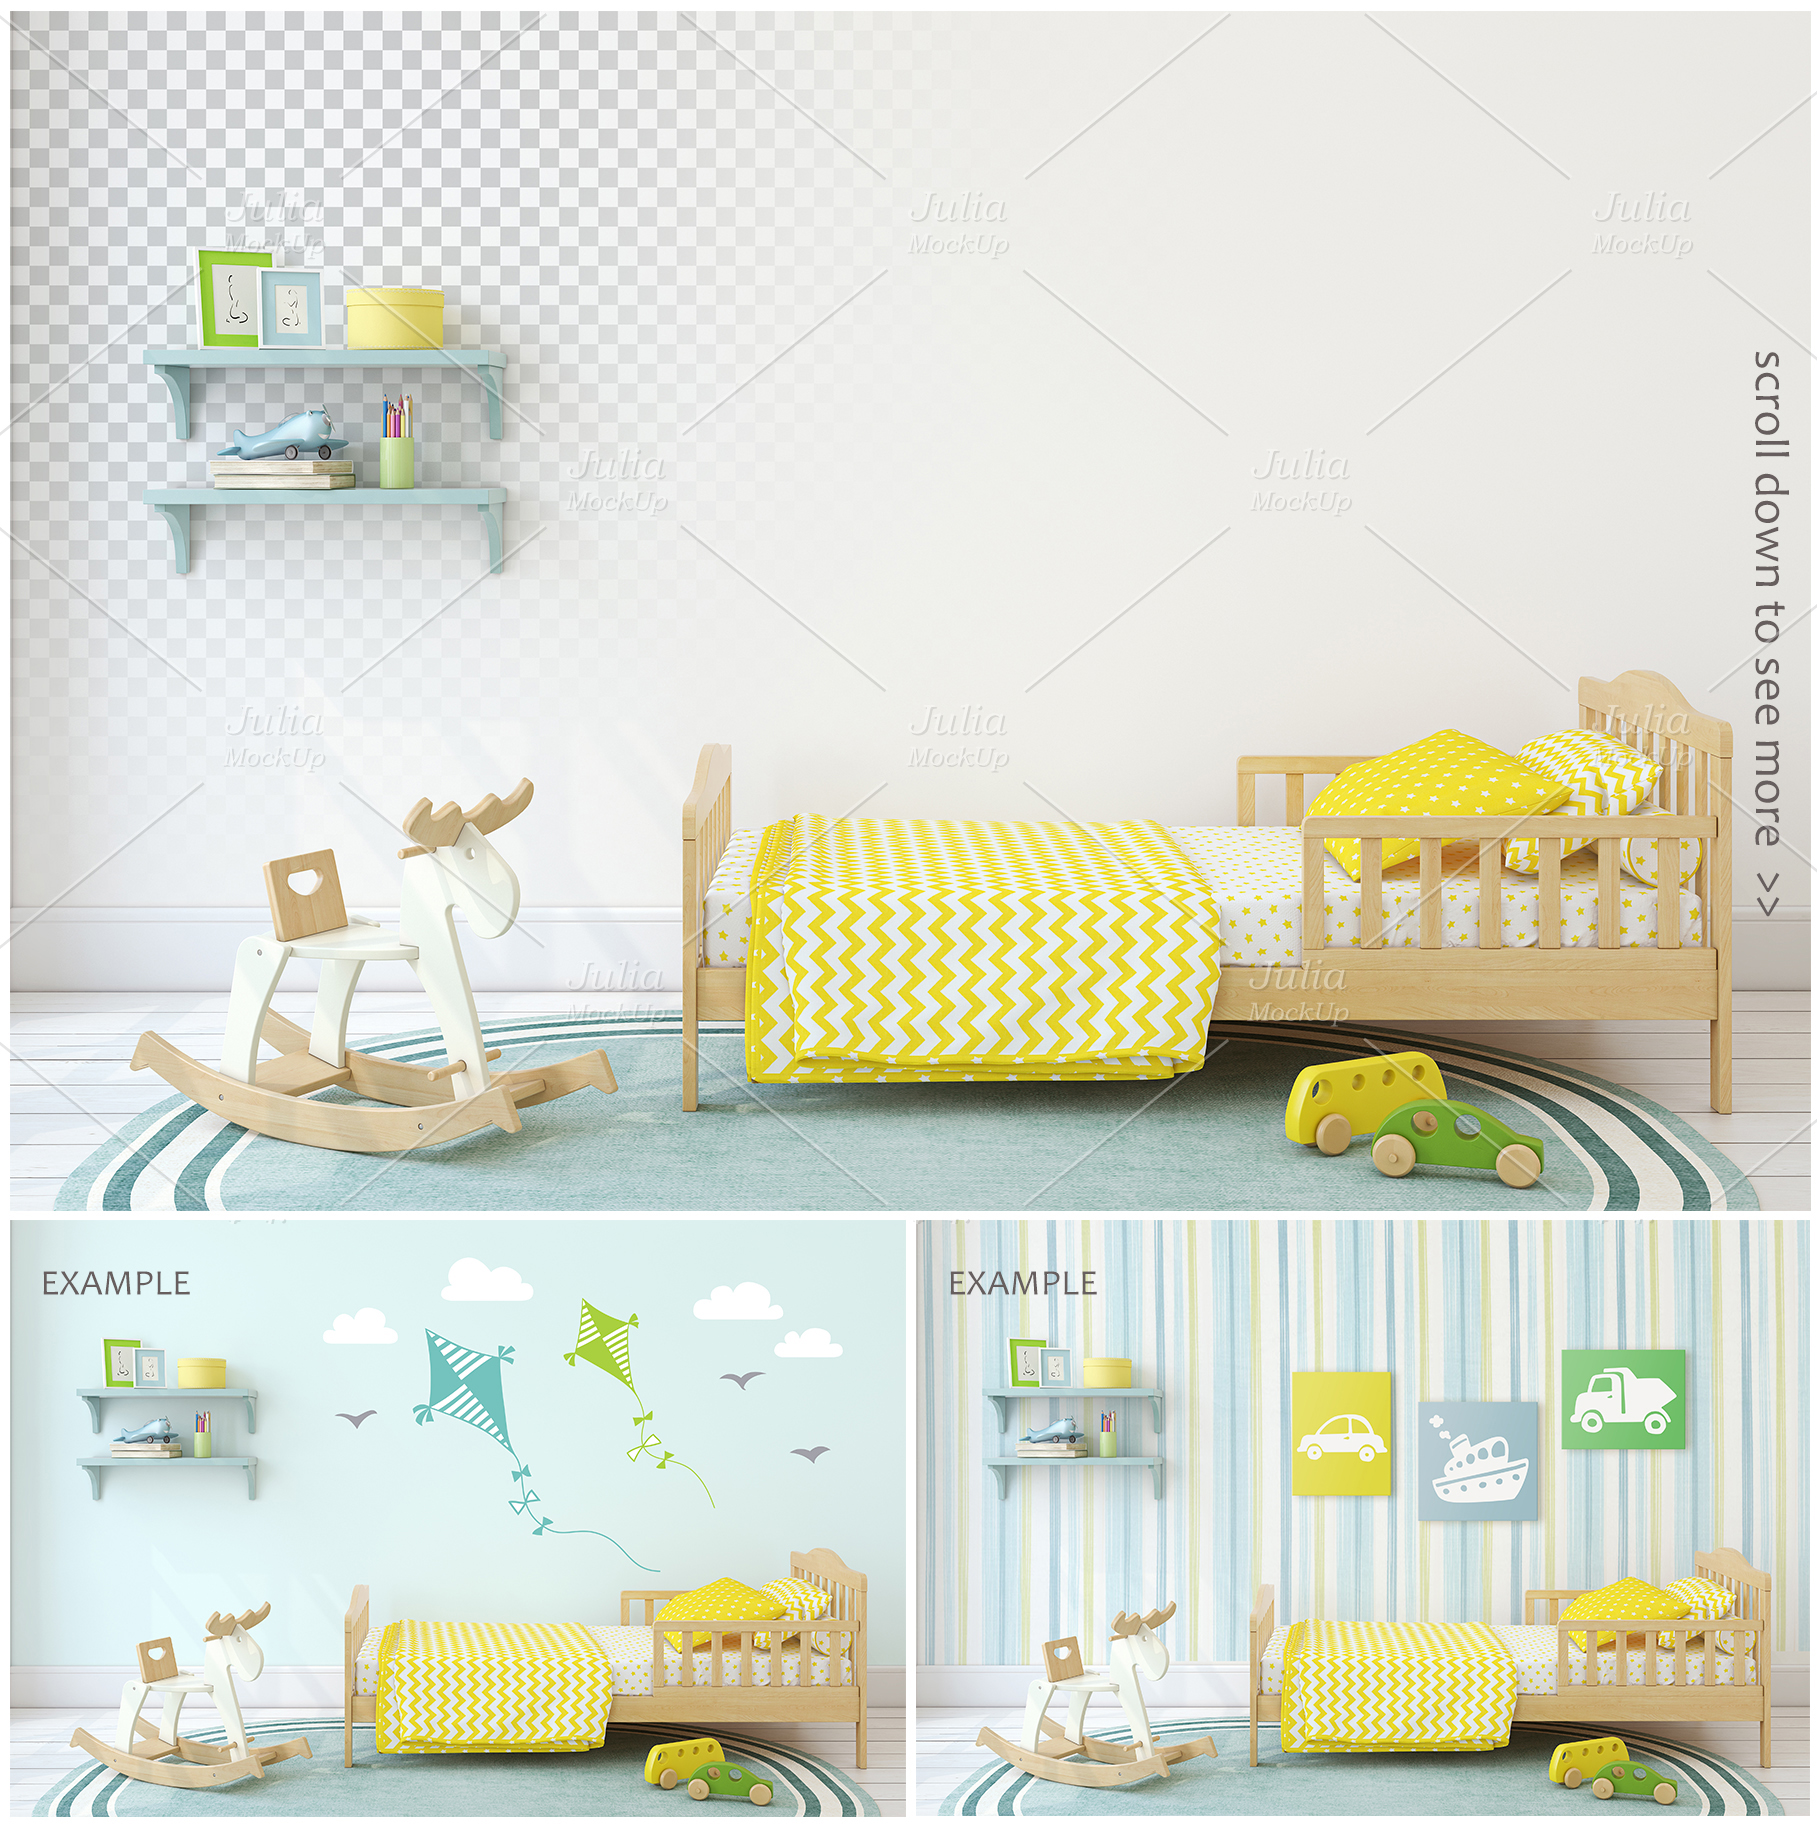 Kid's interiors. Wall&Frames Mockup. example image 3